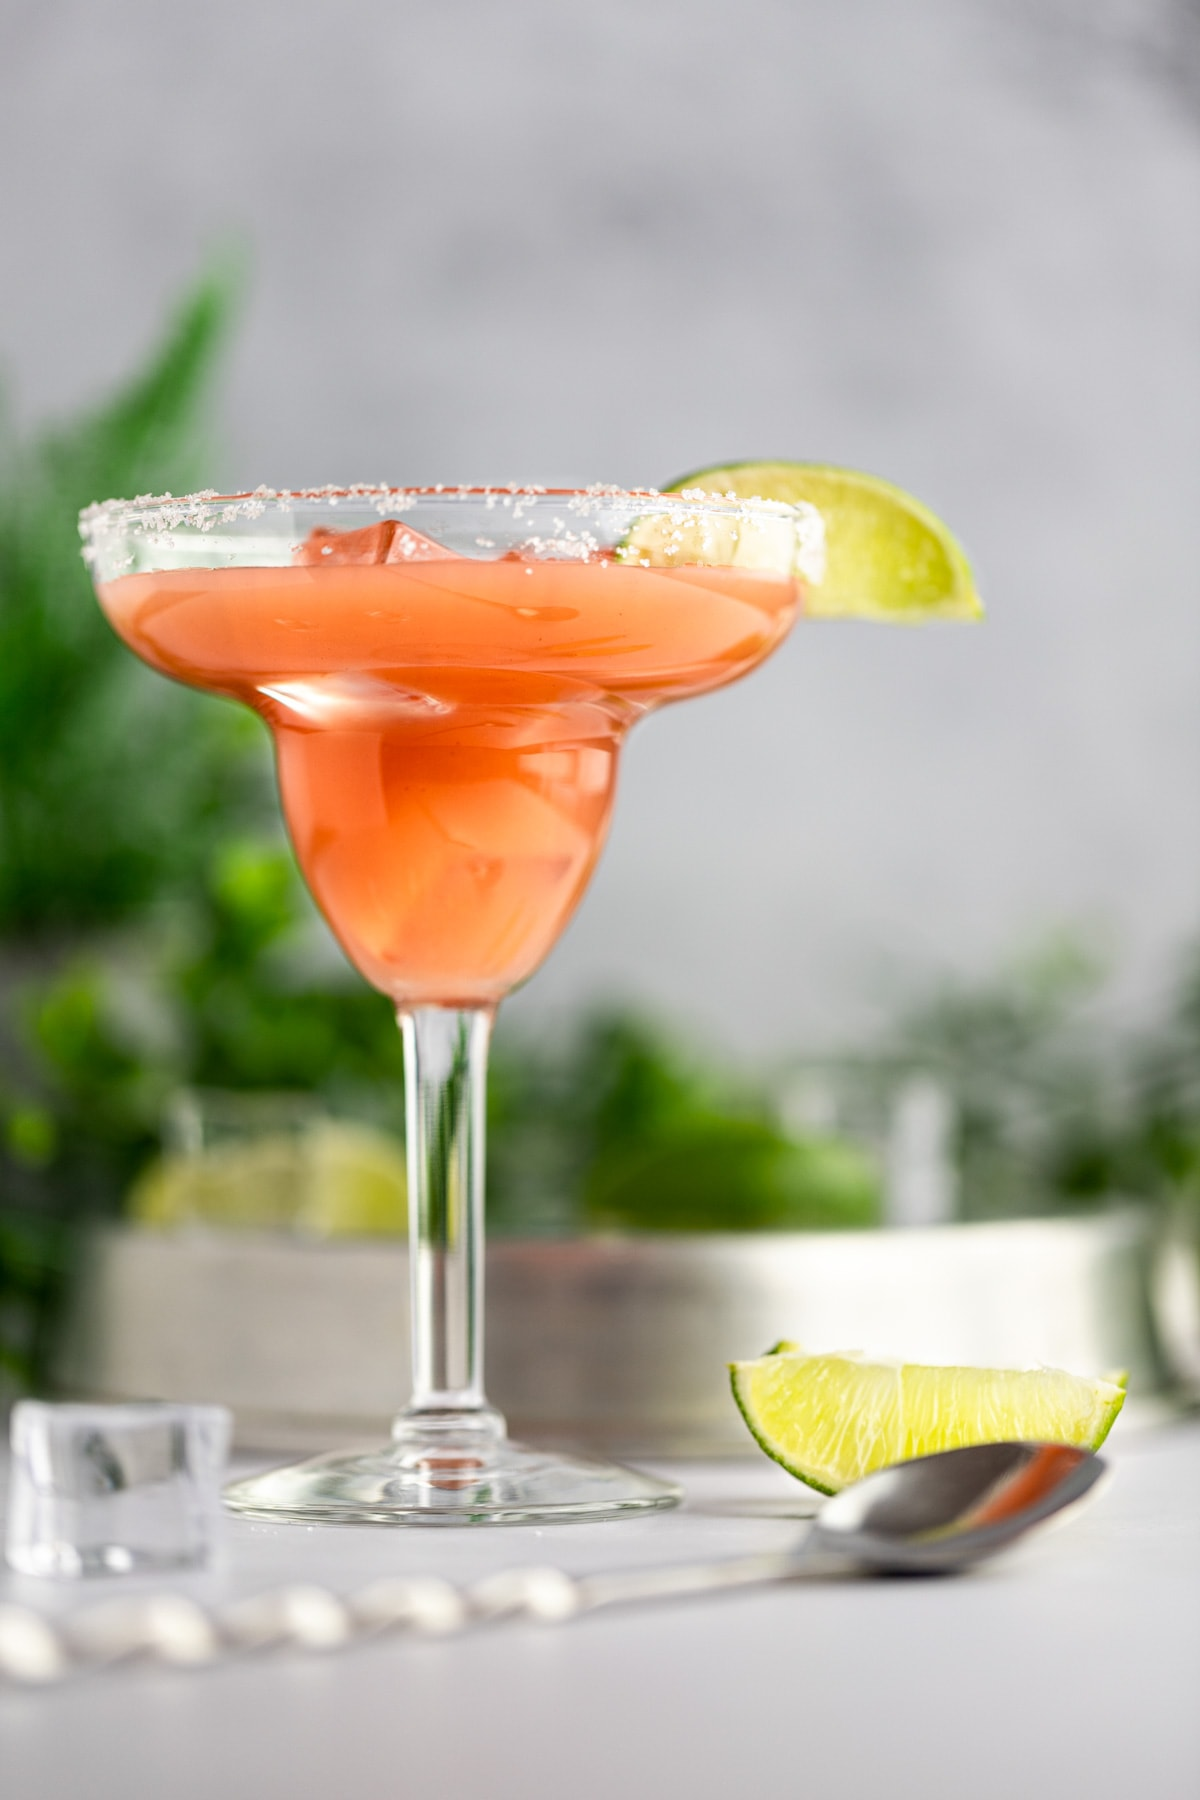 Up close view of a guavarita, next to a slice of lime and ice cubes, with green plants in the background.